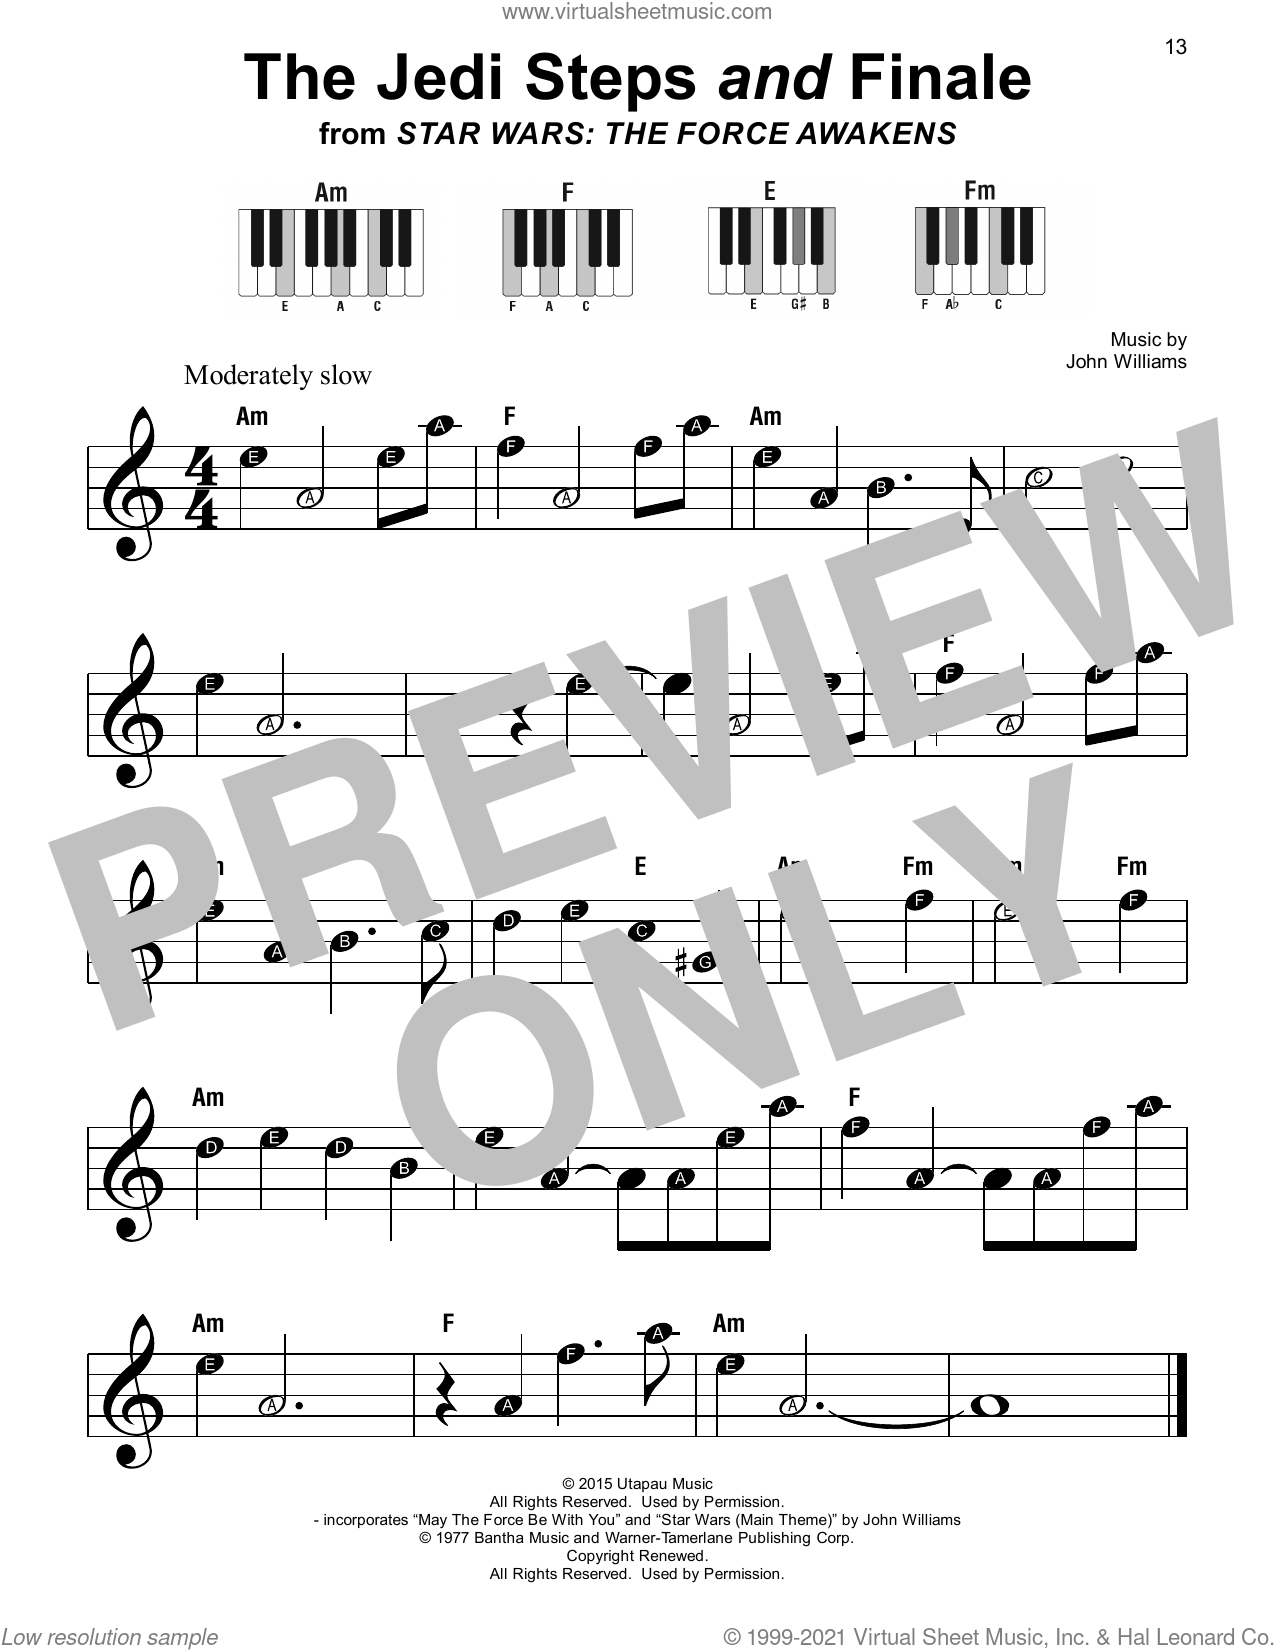 The Jedi Steps And Finale (from Star Wars: The Force Awakens) sheet music for piano solo by John Williams, beginner skill level